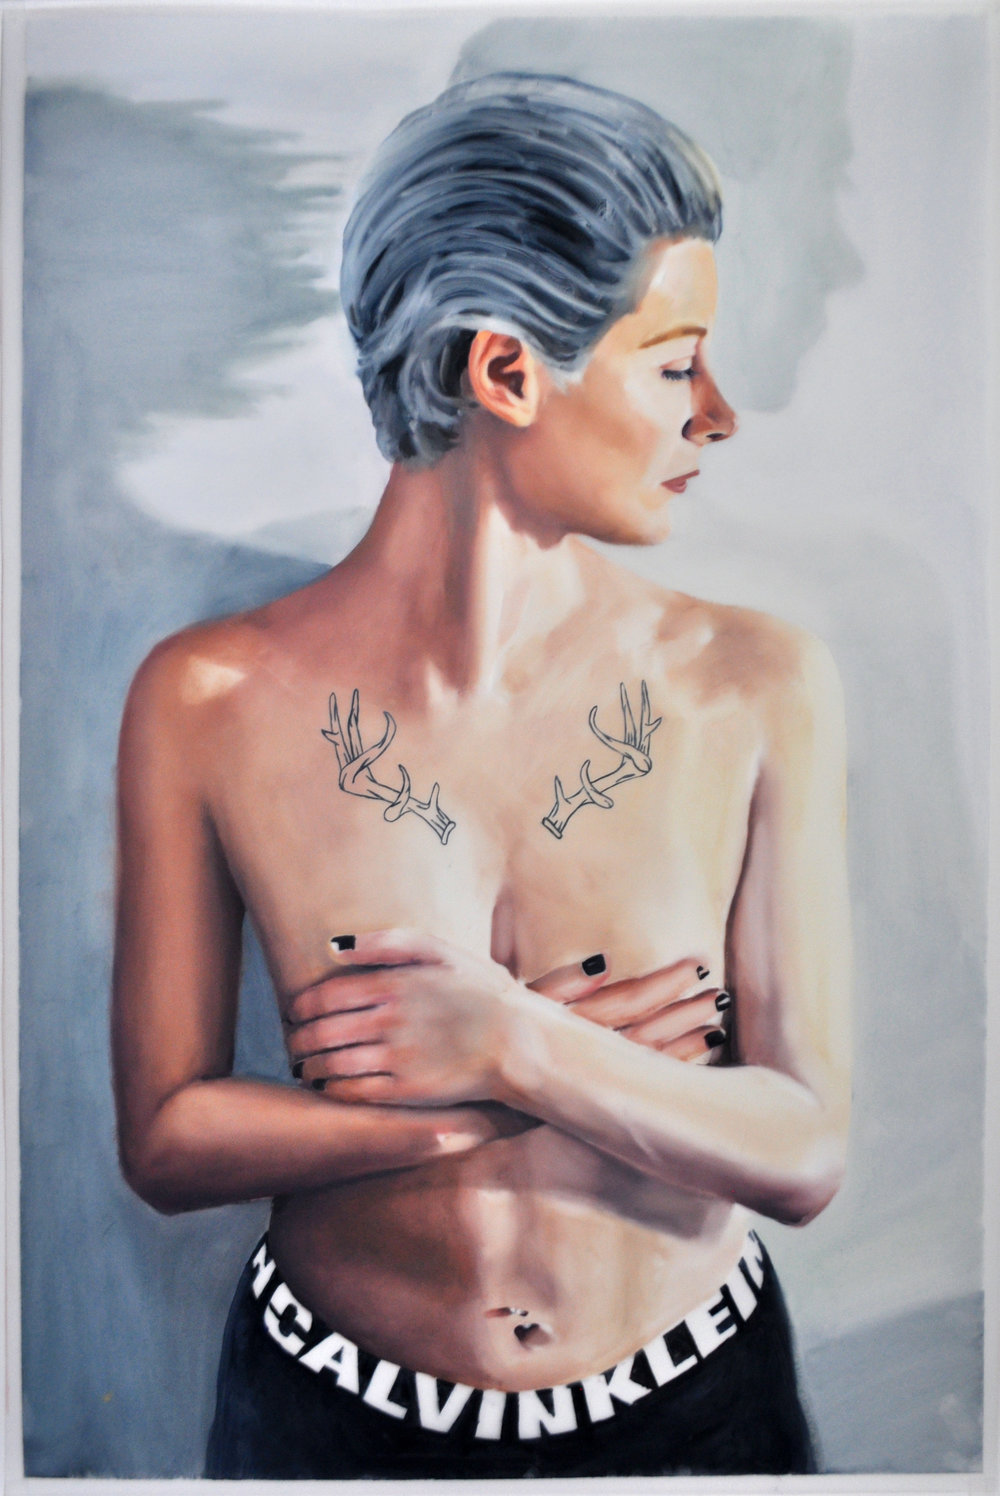 Rebecca_2014_Oil on mylar_28.5inx19in copy.jpg